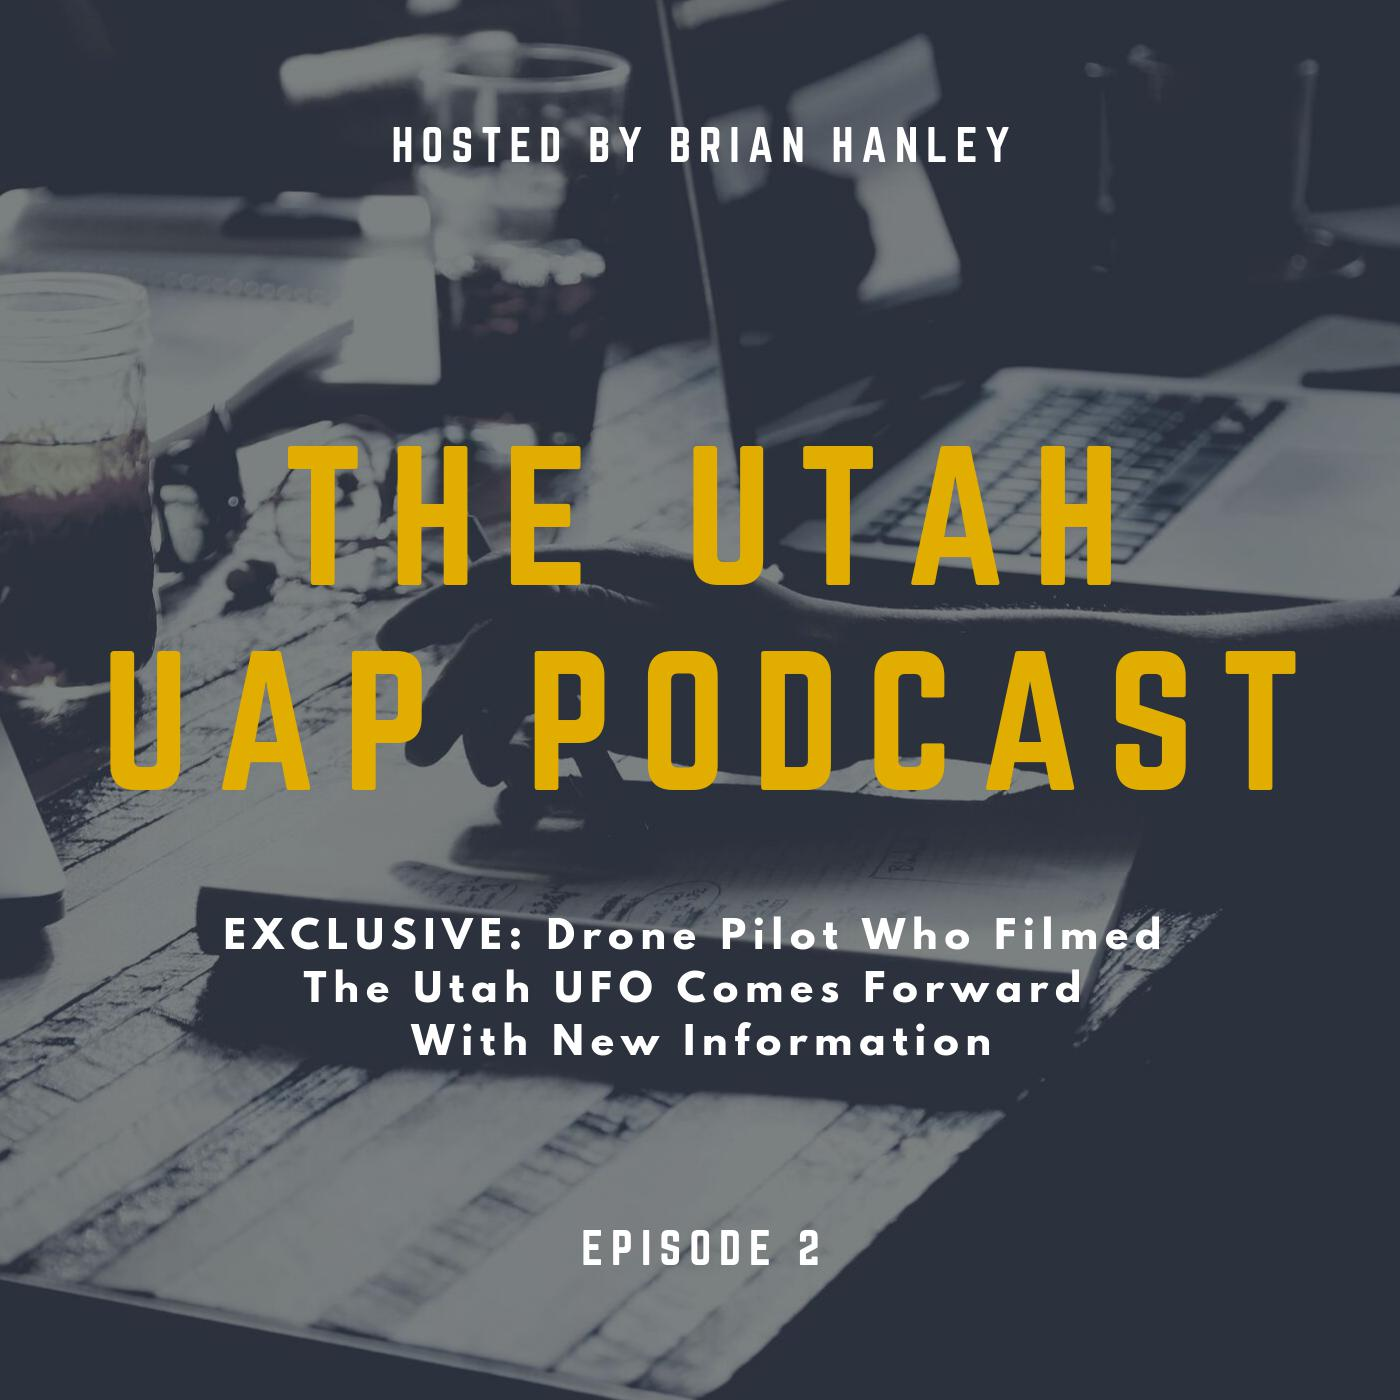 EXCLUSIVE: Drone Pilot Behind Utah UFO Footage Comes Forward W/ New Information